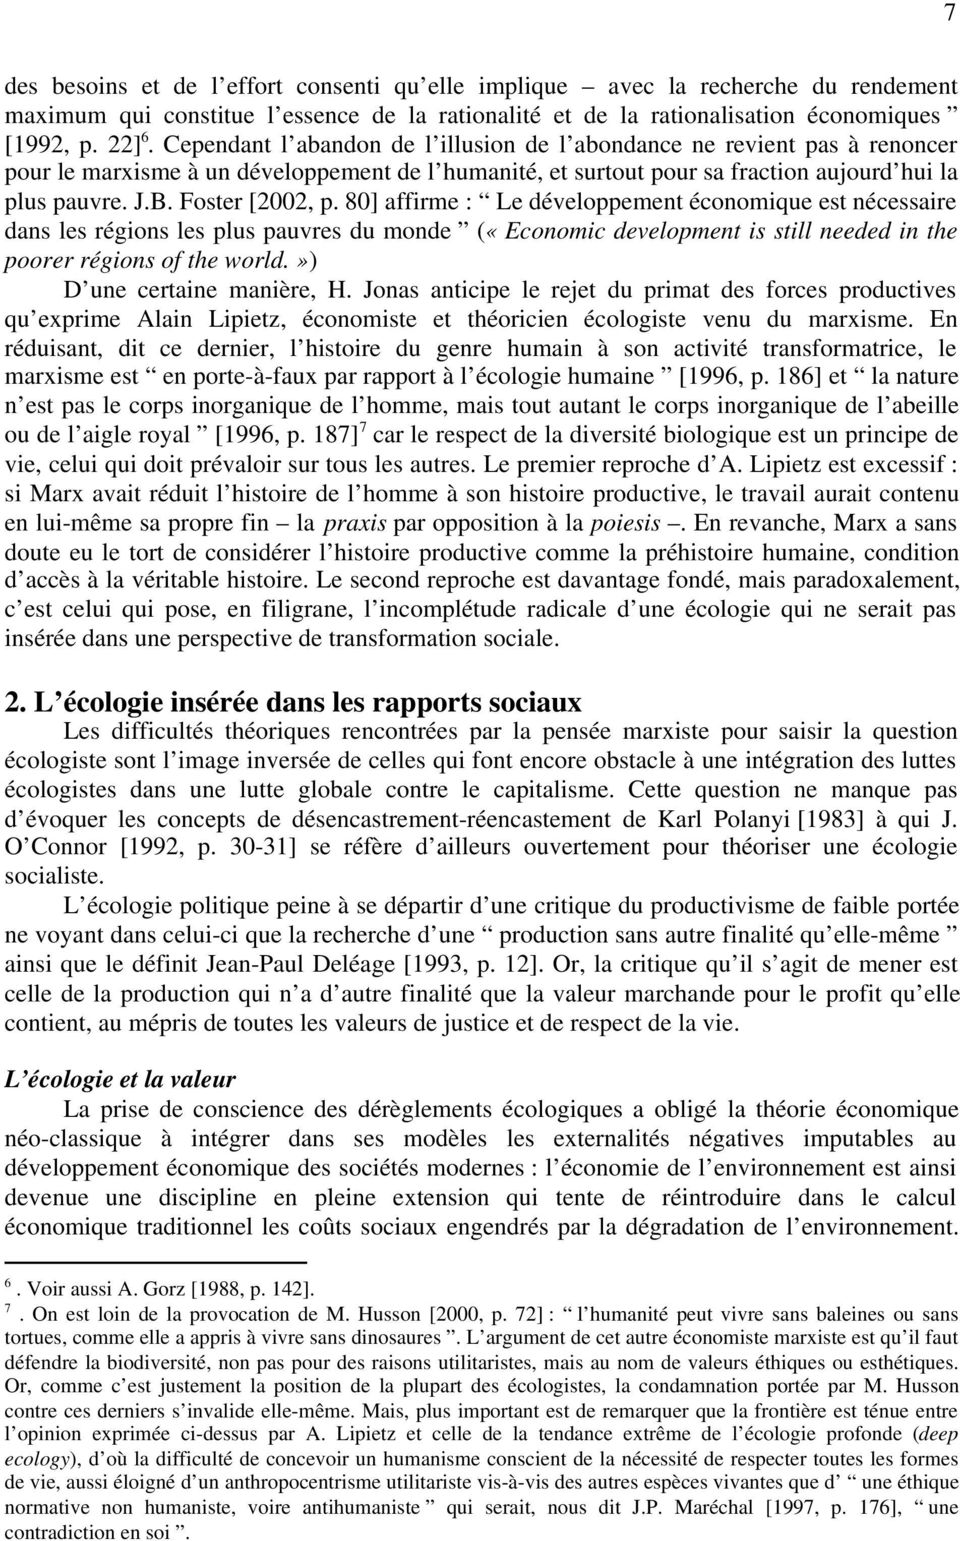 Foster [2002, p. 80] affirme : Le développement économique est nécessaire dans les régions les plus pauvres du monde («Economic development is still needed in the poorer régions of the world.